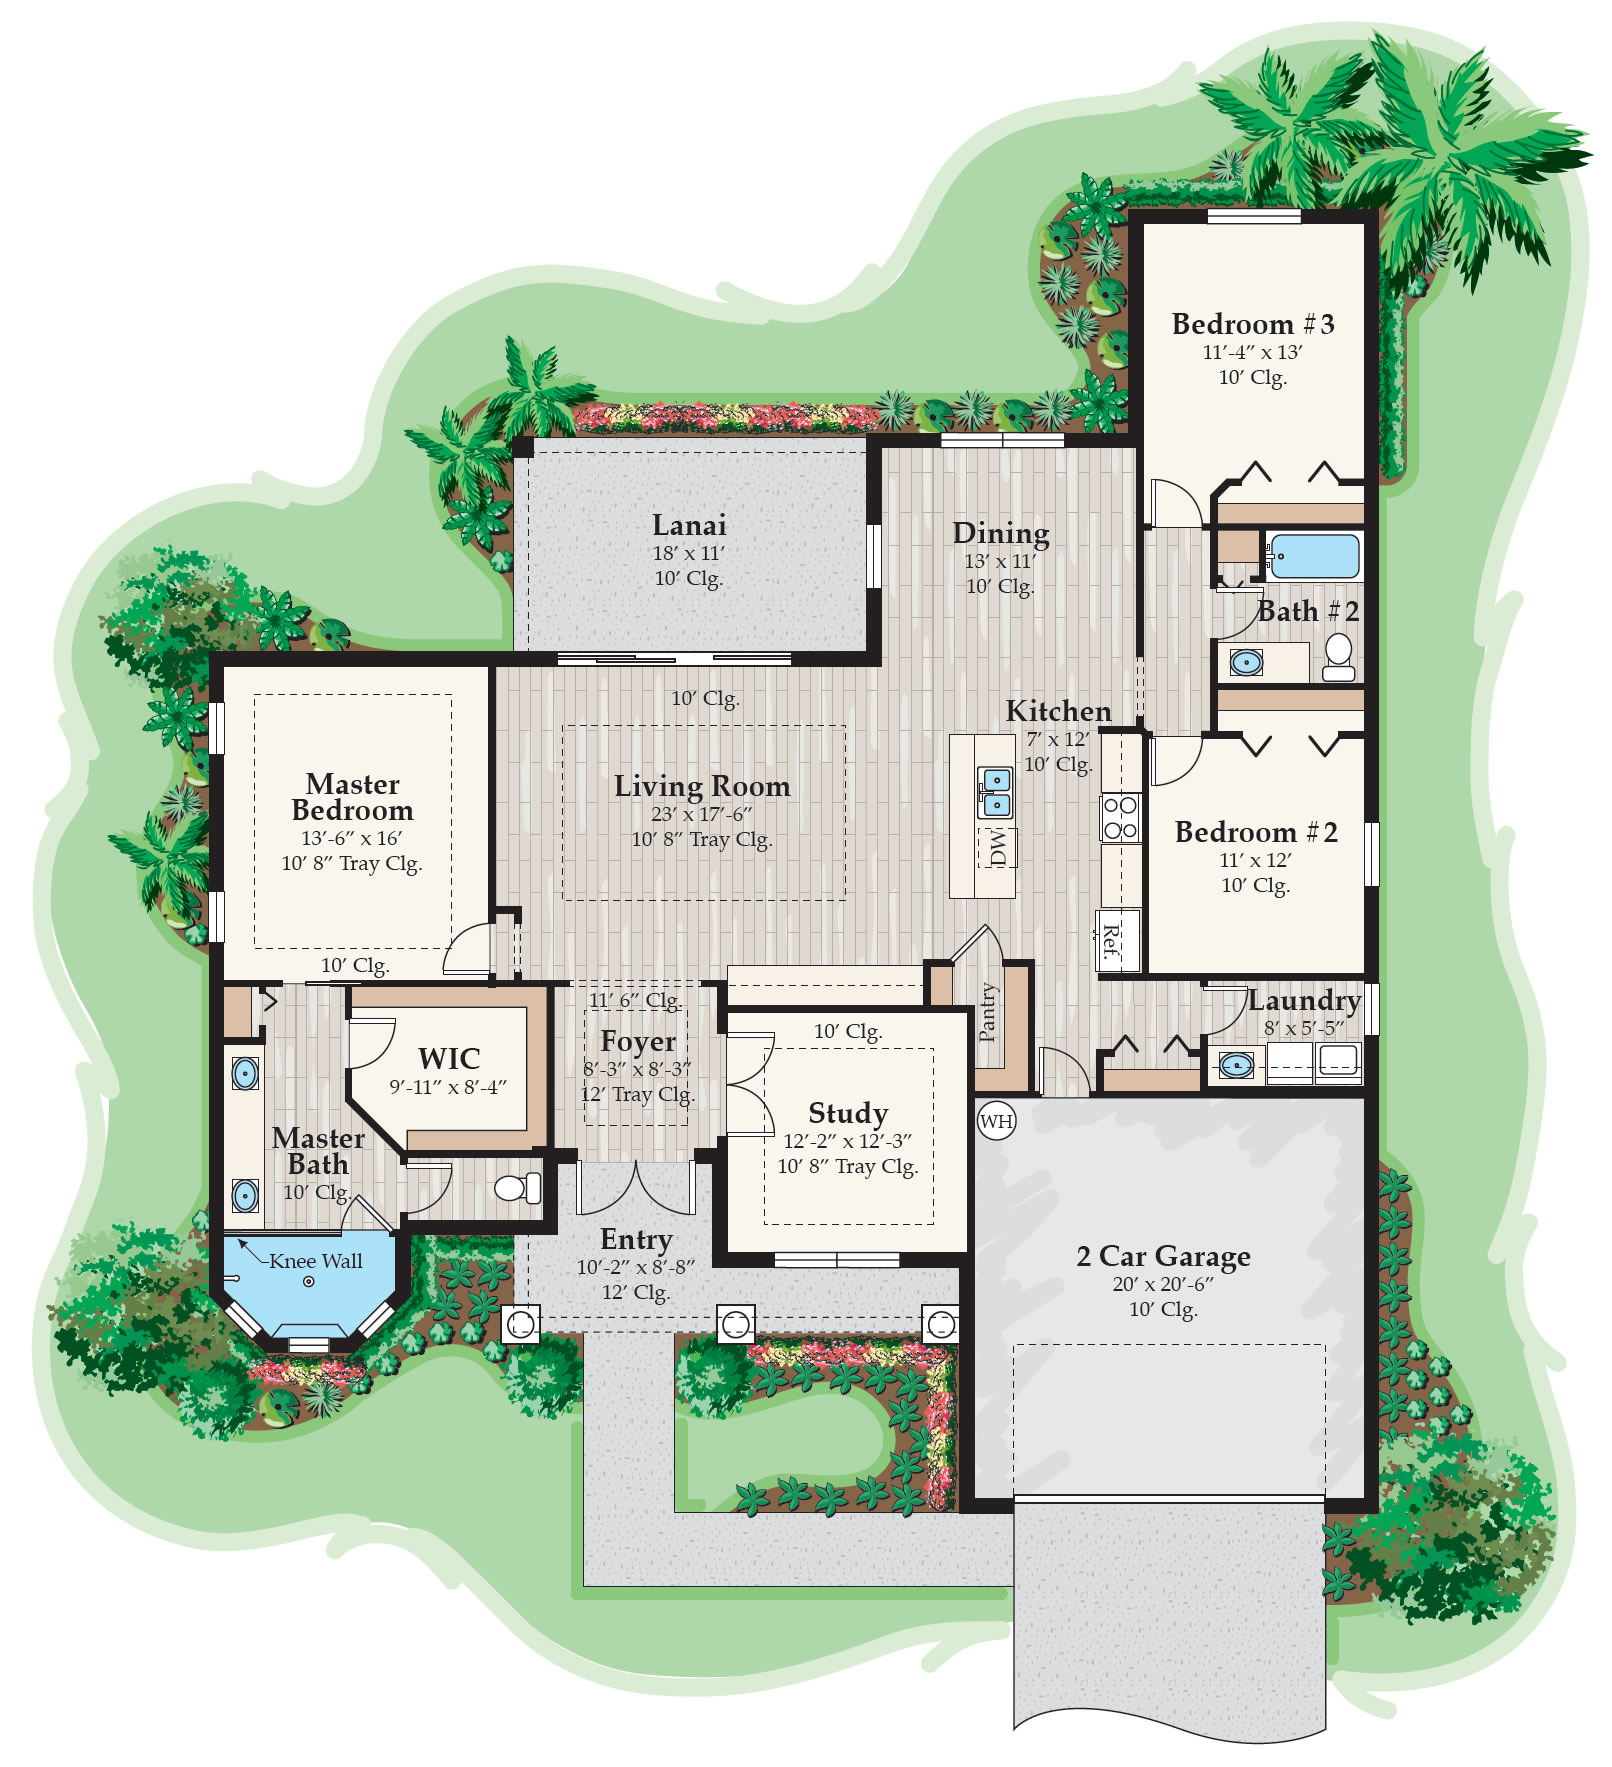 Your Guide to the 5 Home Floorplans Available From GH Builders